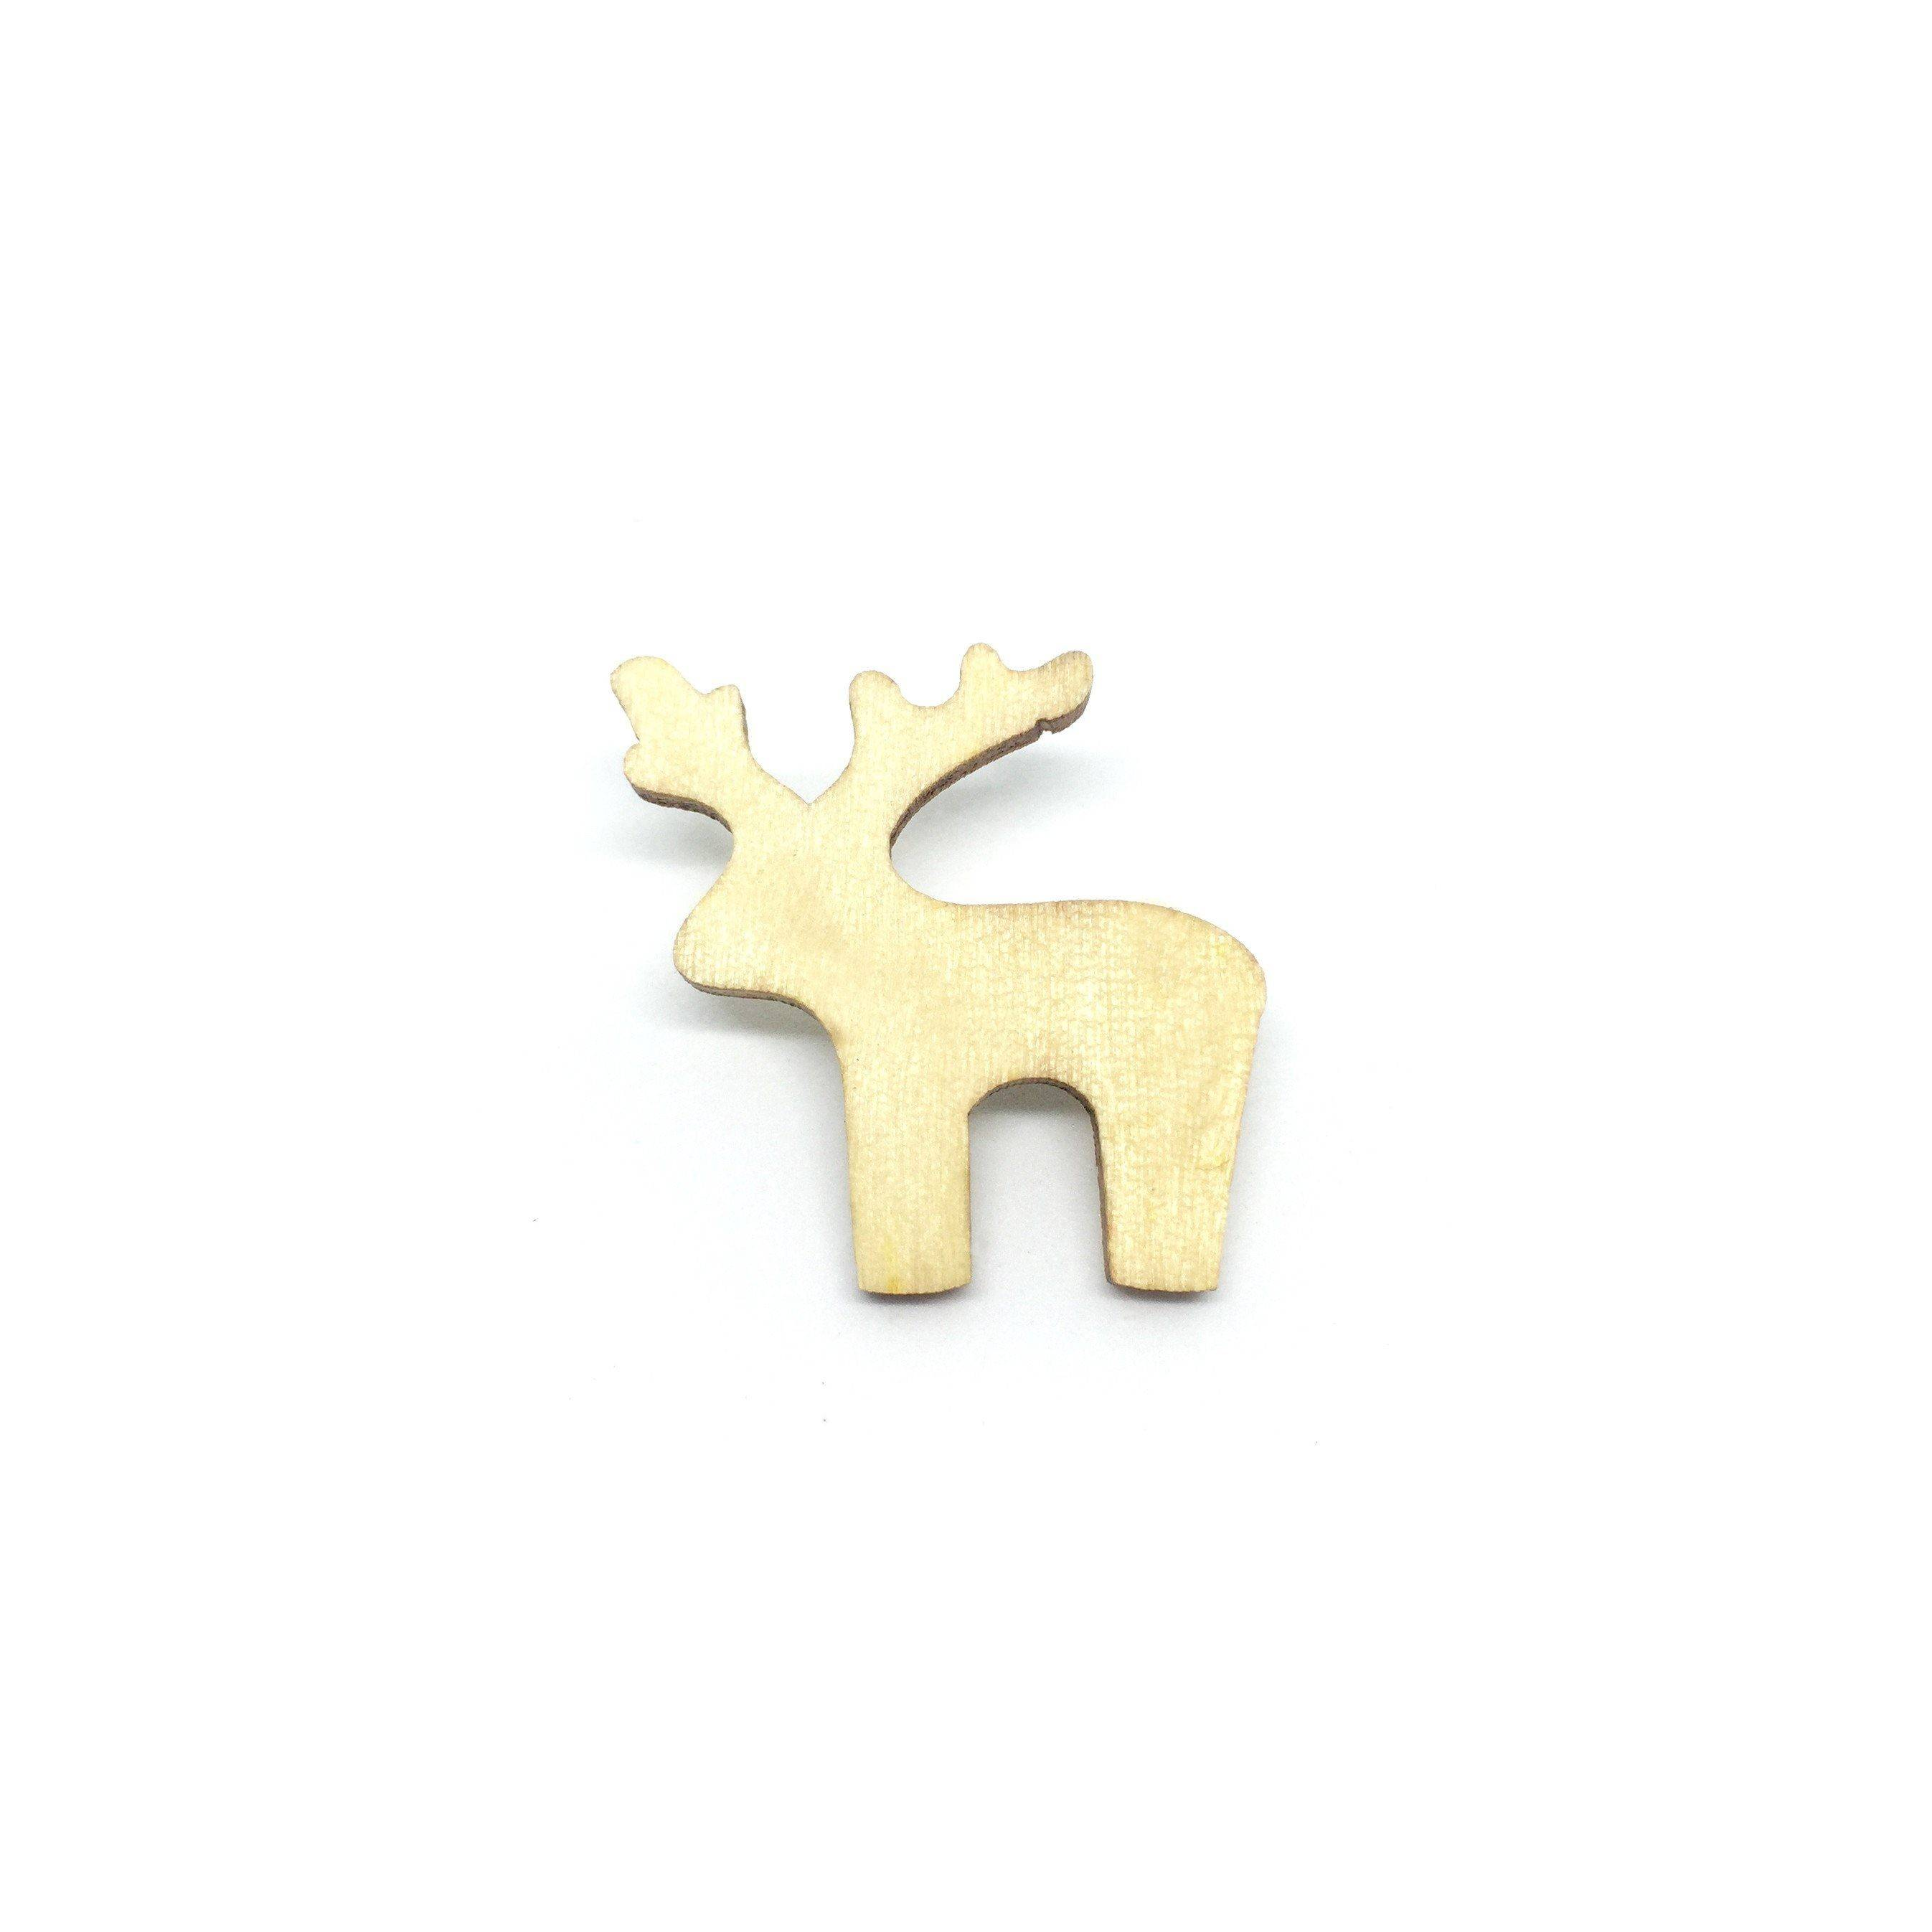 Lovely Deer Wooden Brooch Pin - Brooches - Paperdaise Accessories - Naiise